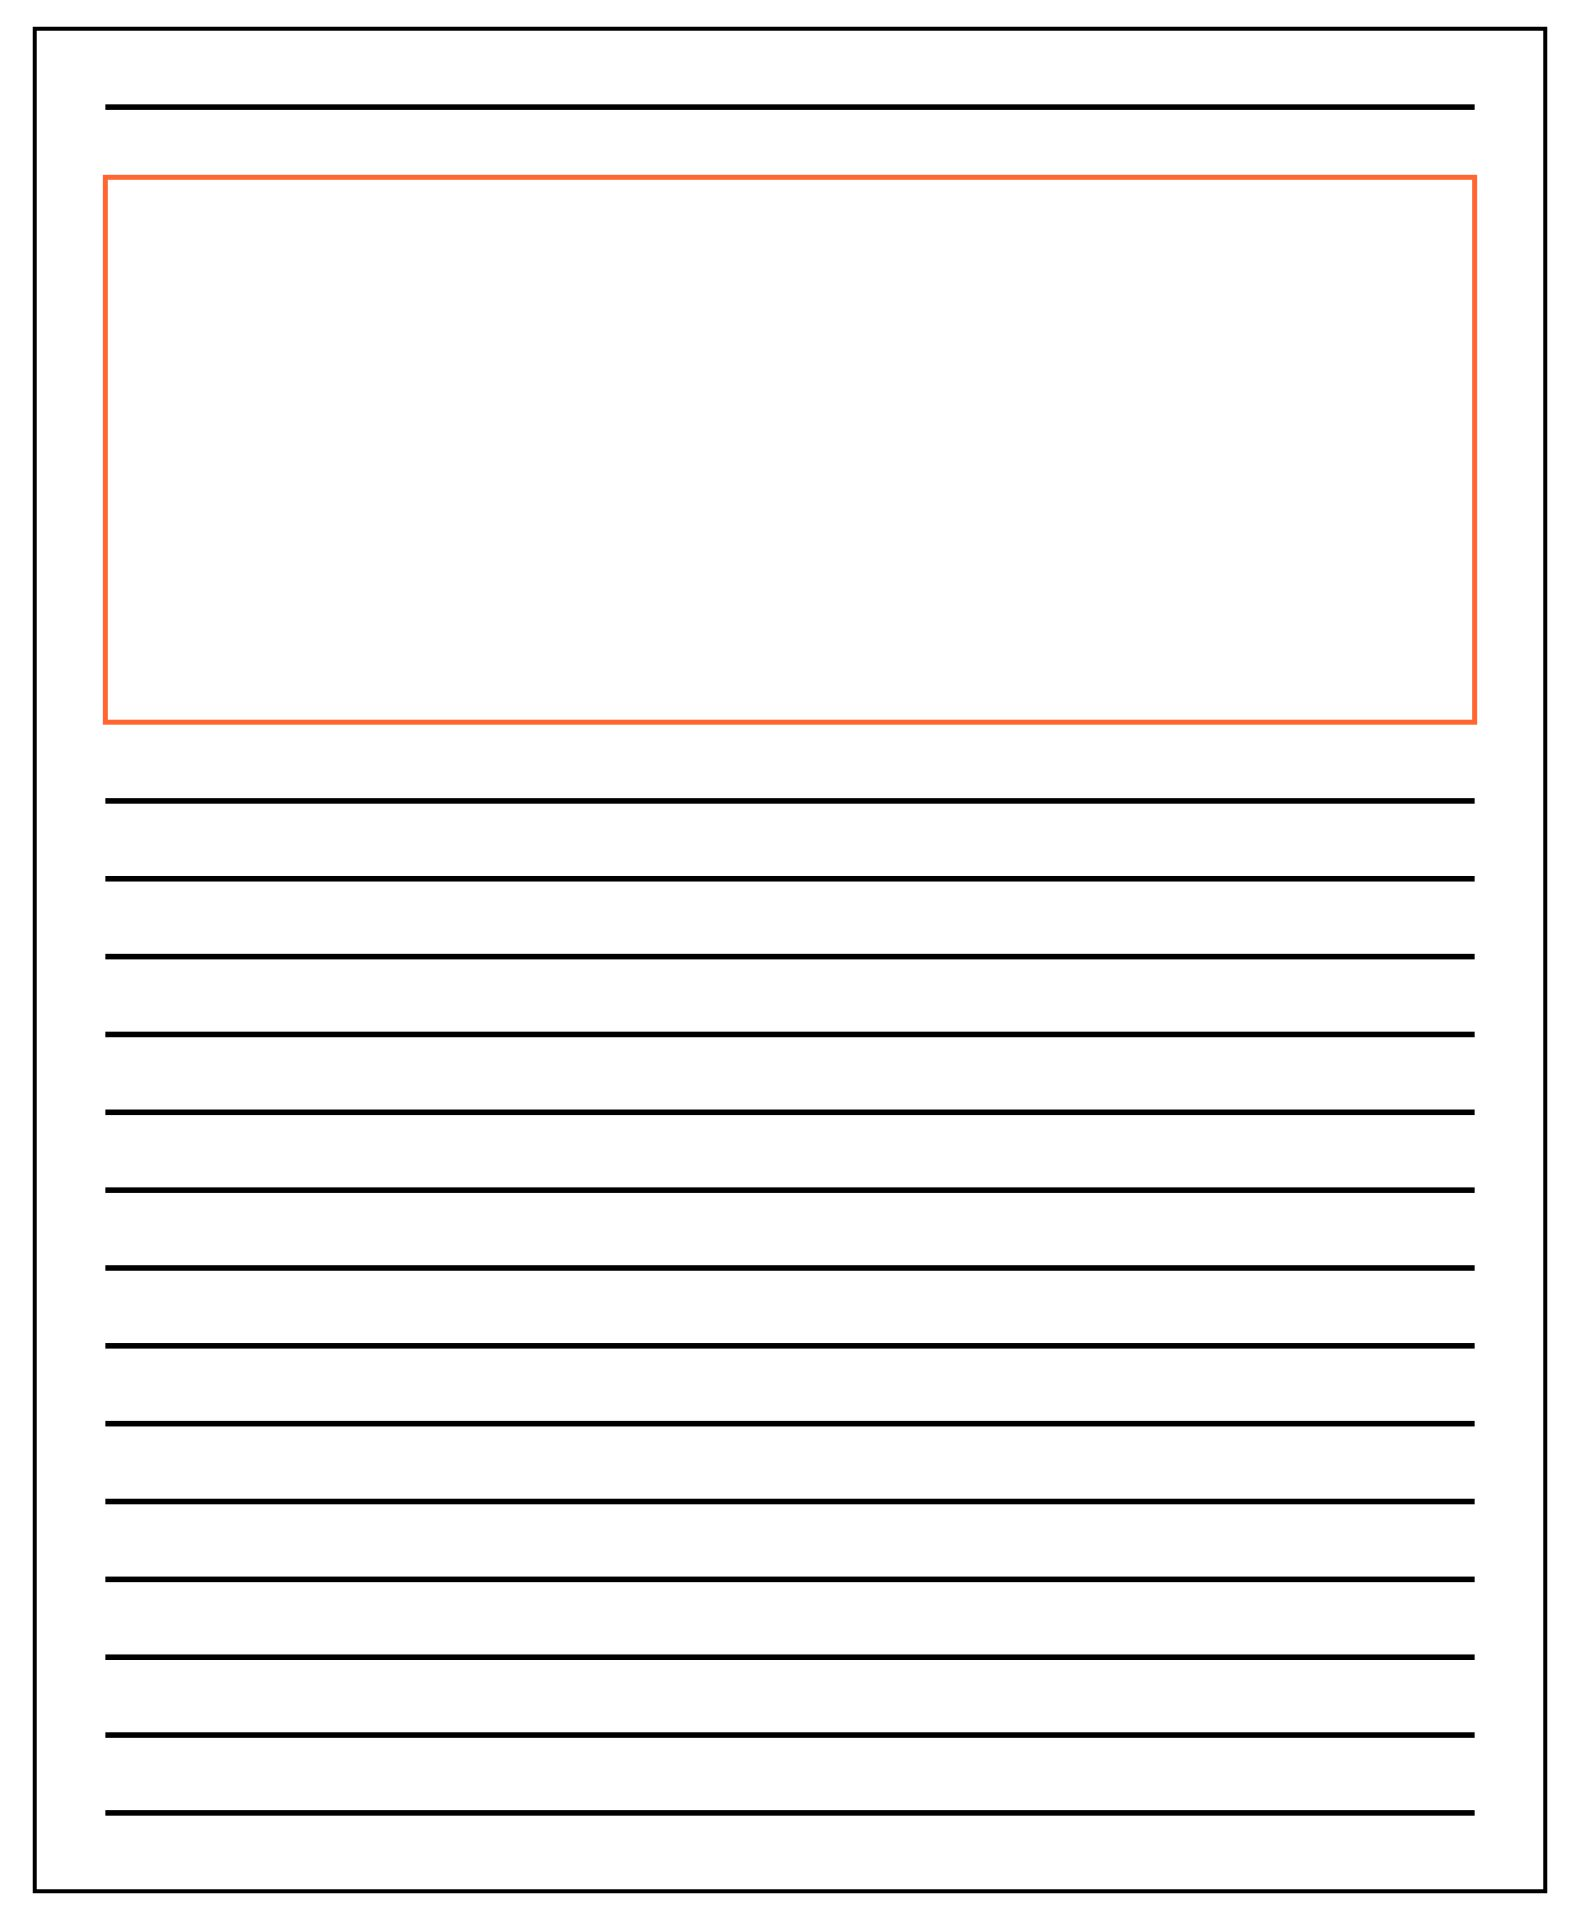 Lined Paper With Drawing Box incident report sample format – Lined Paper with Drawing Box